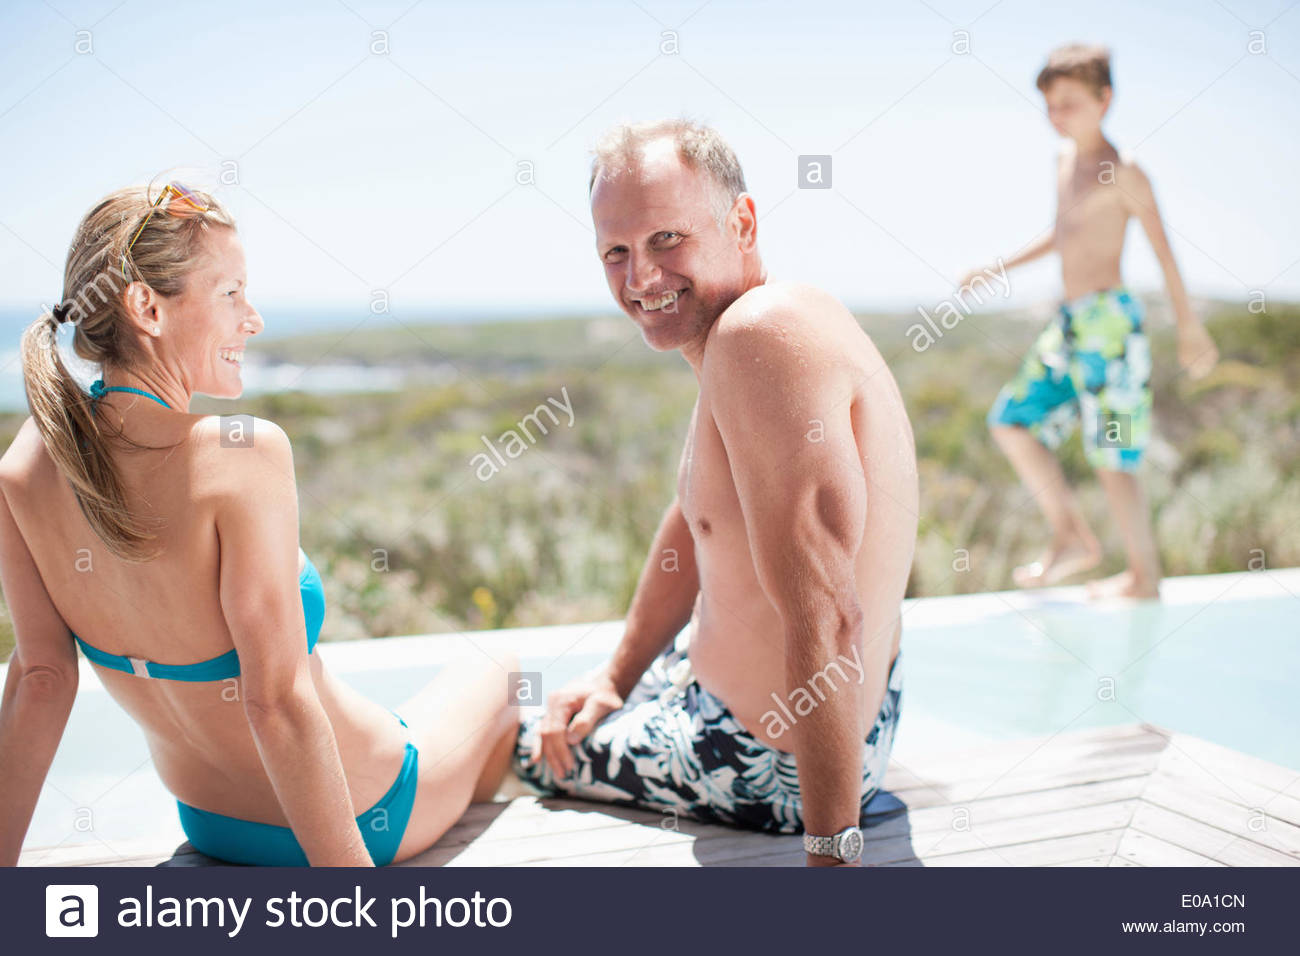 Family sitting by swimming pool - Stock Image